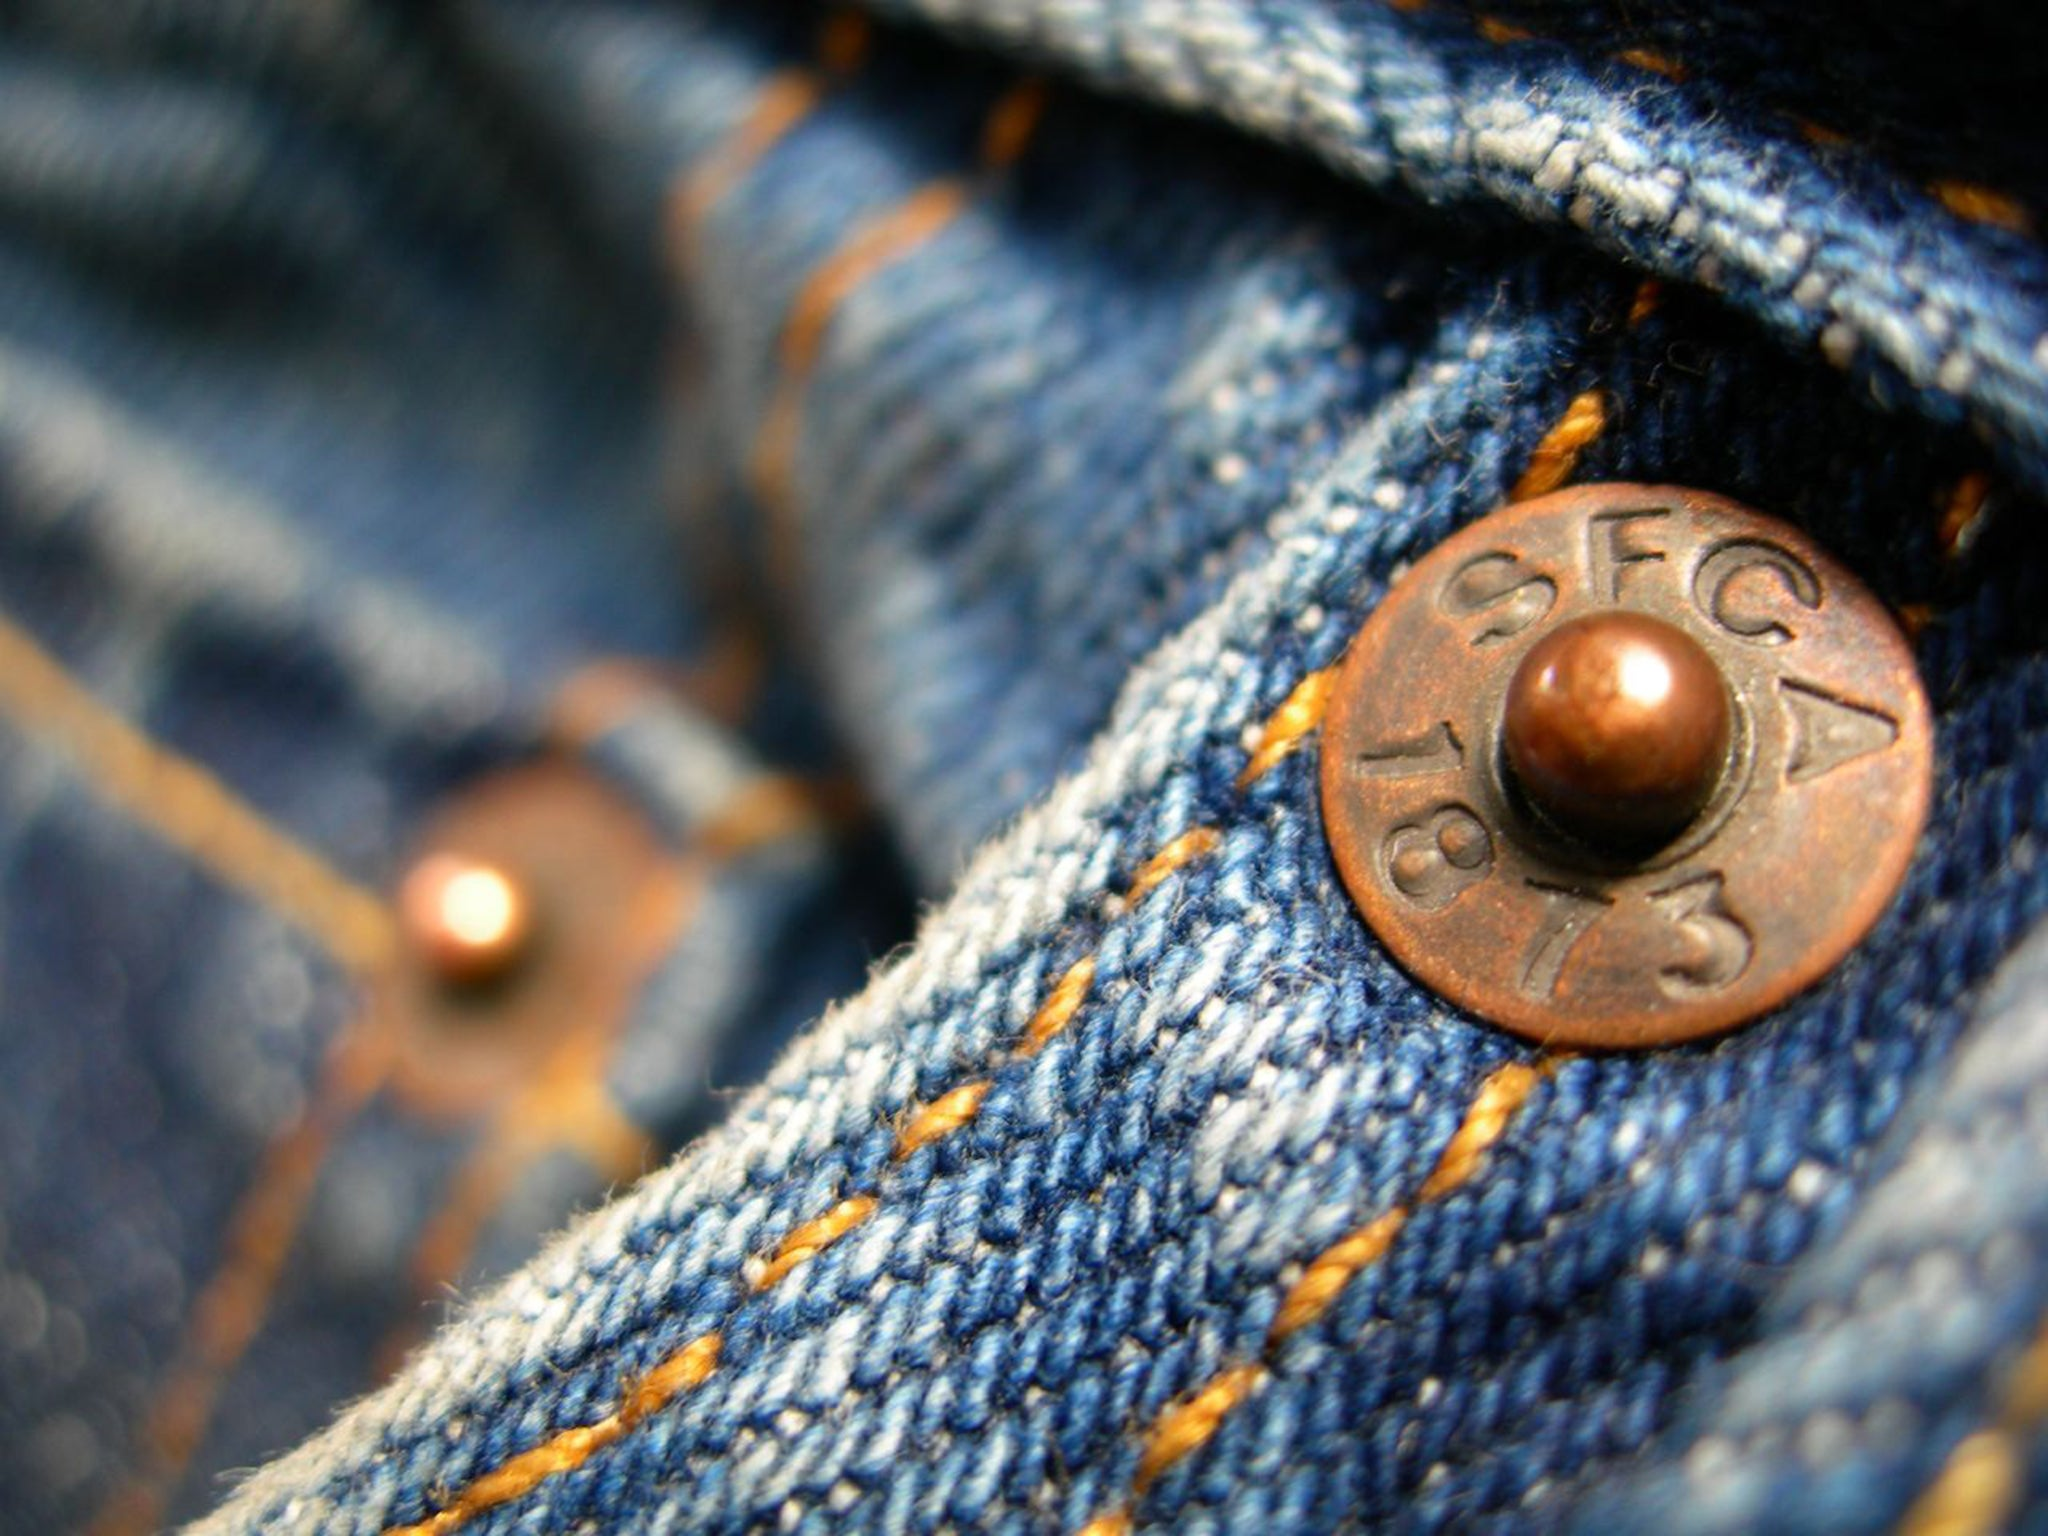 Those tiny bits of metal on the pockets of your jeans are